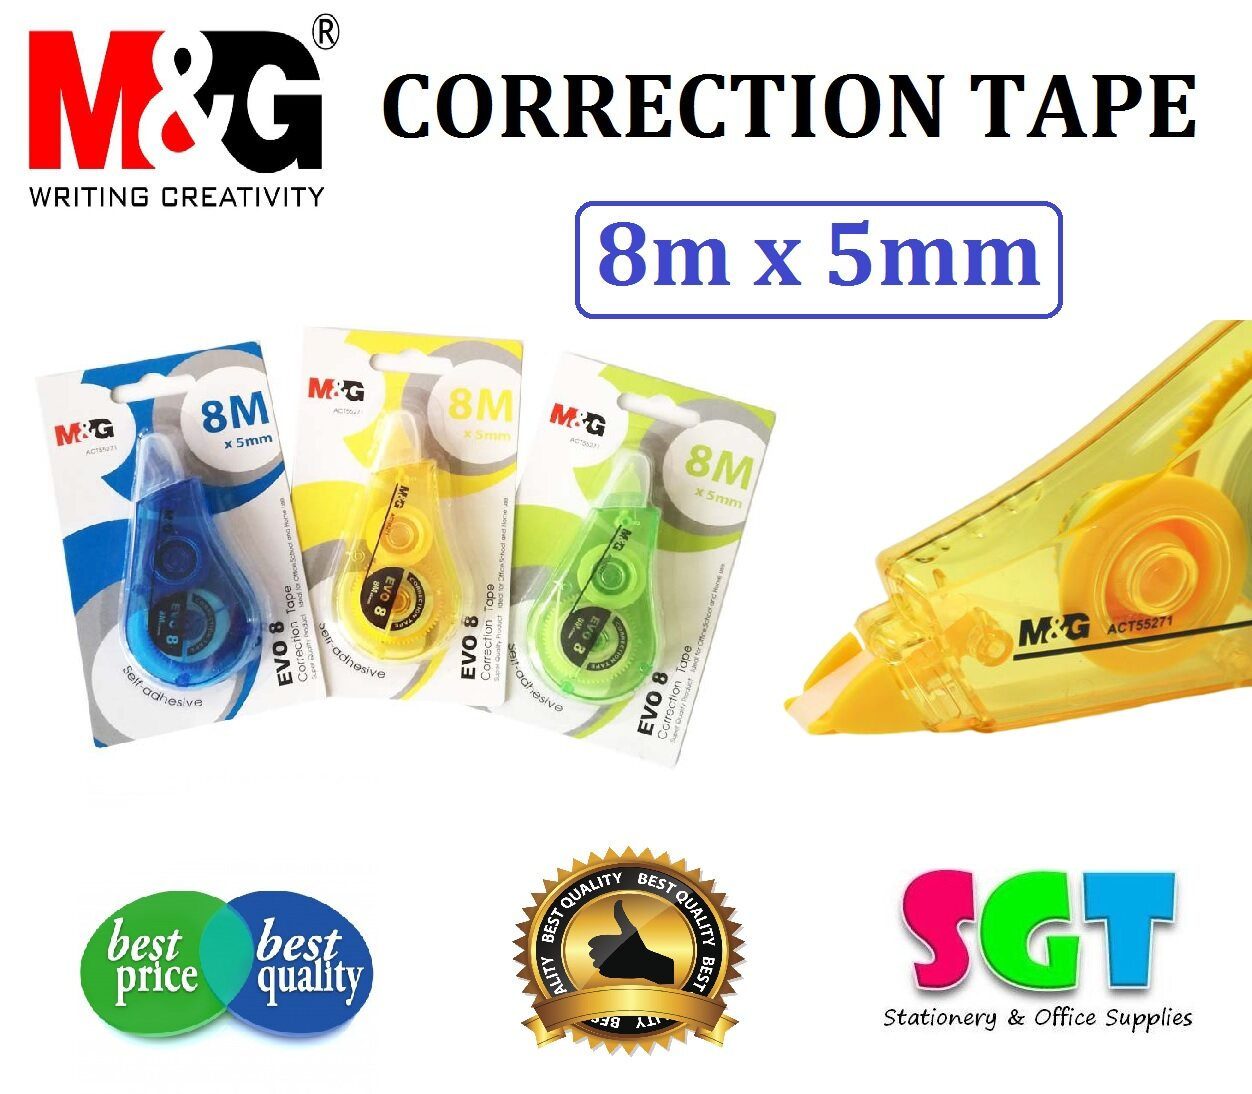 M&G Evo 8 Correction Tape 8m x 5mm ( 1 PC Only )